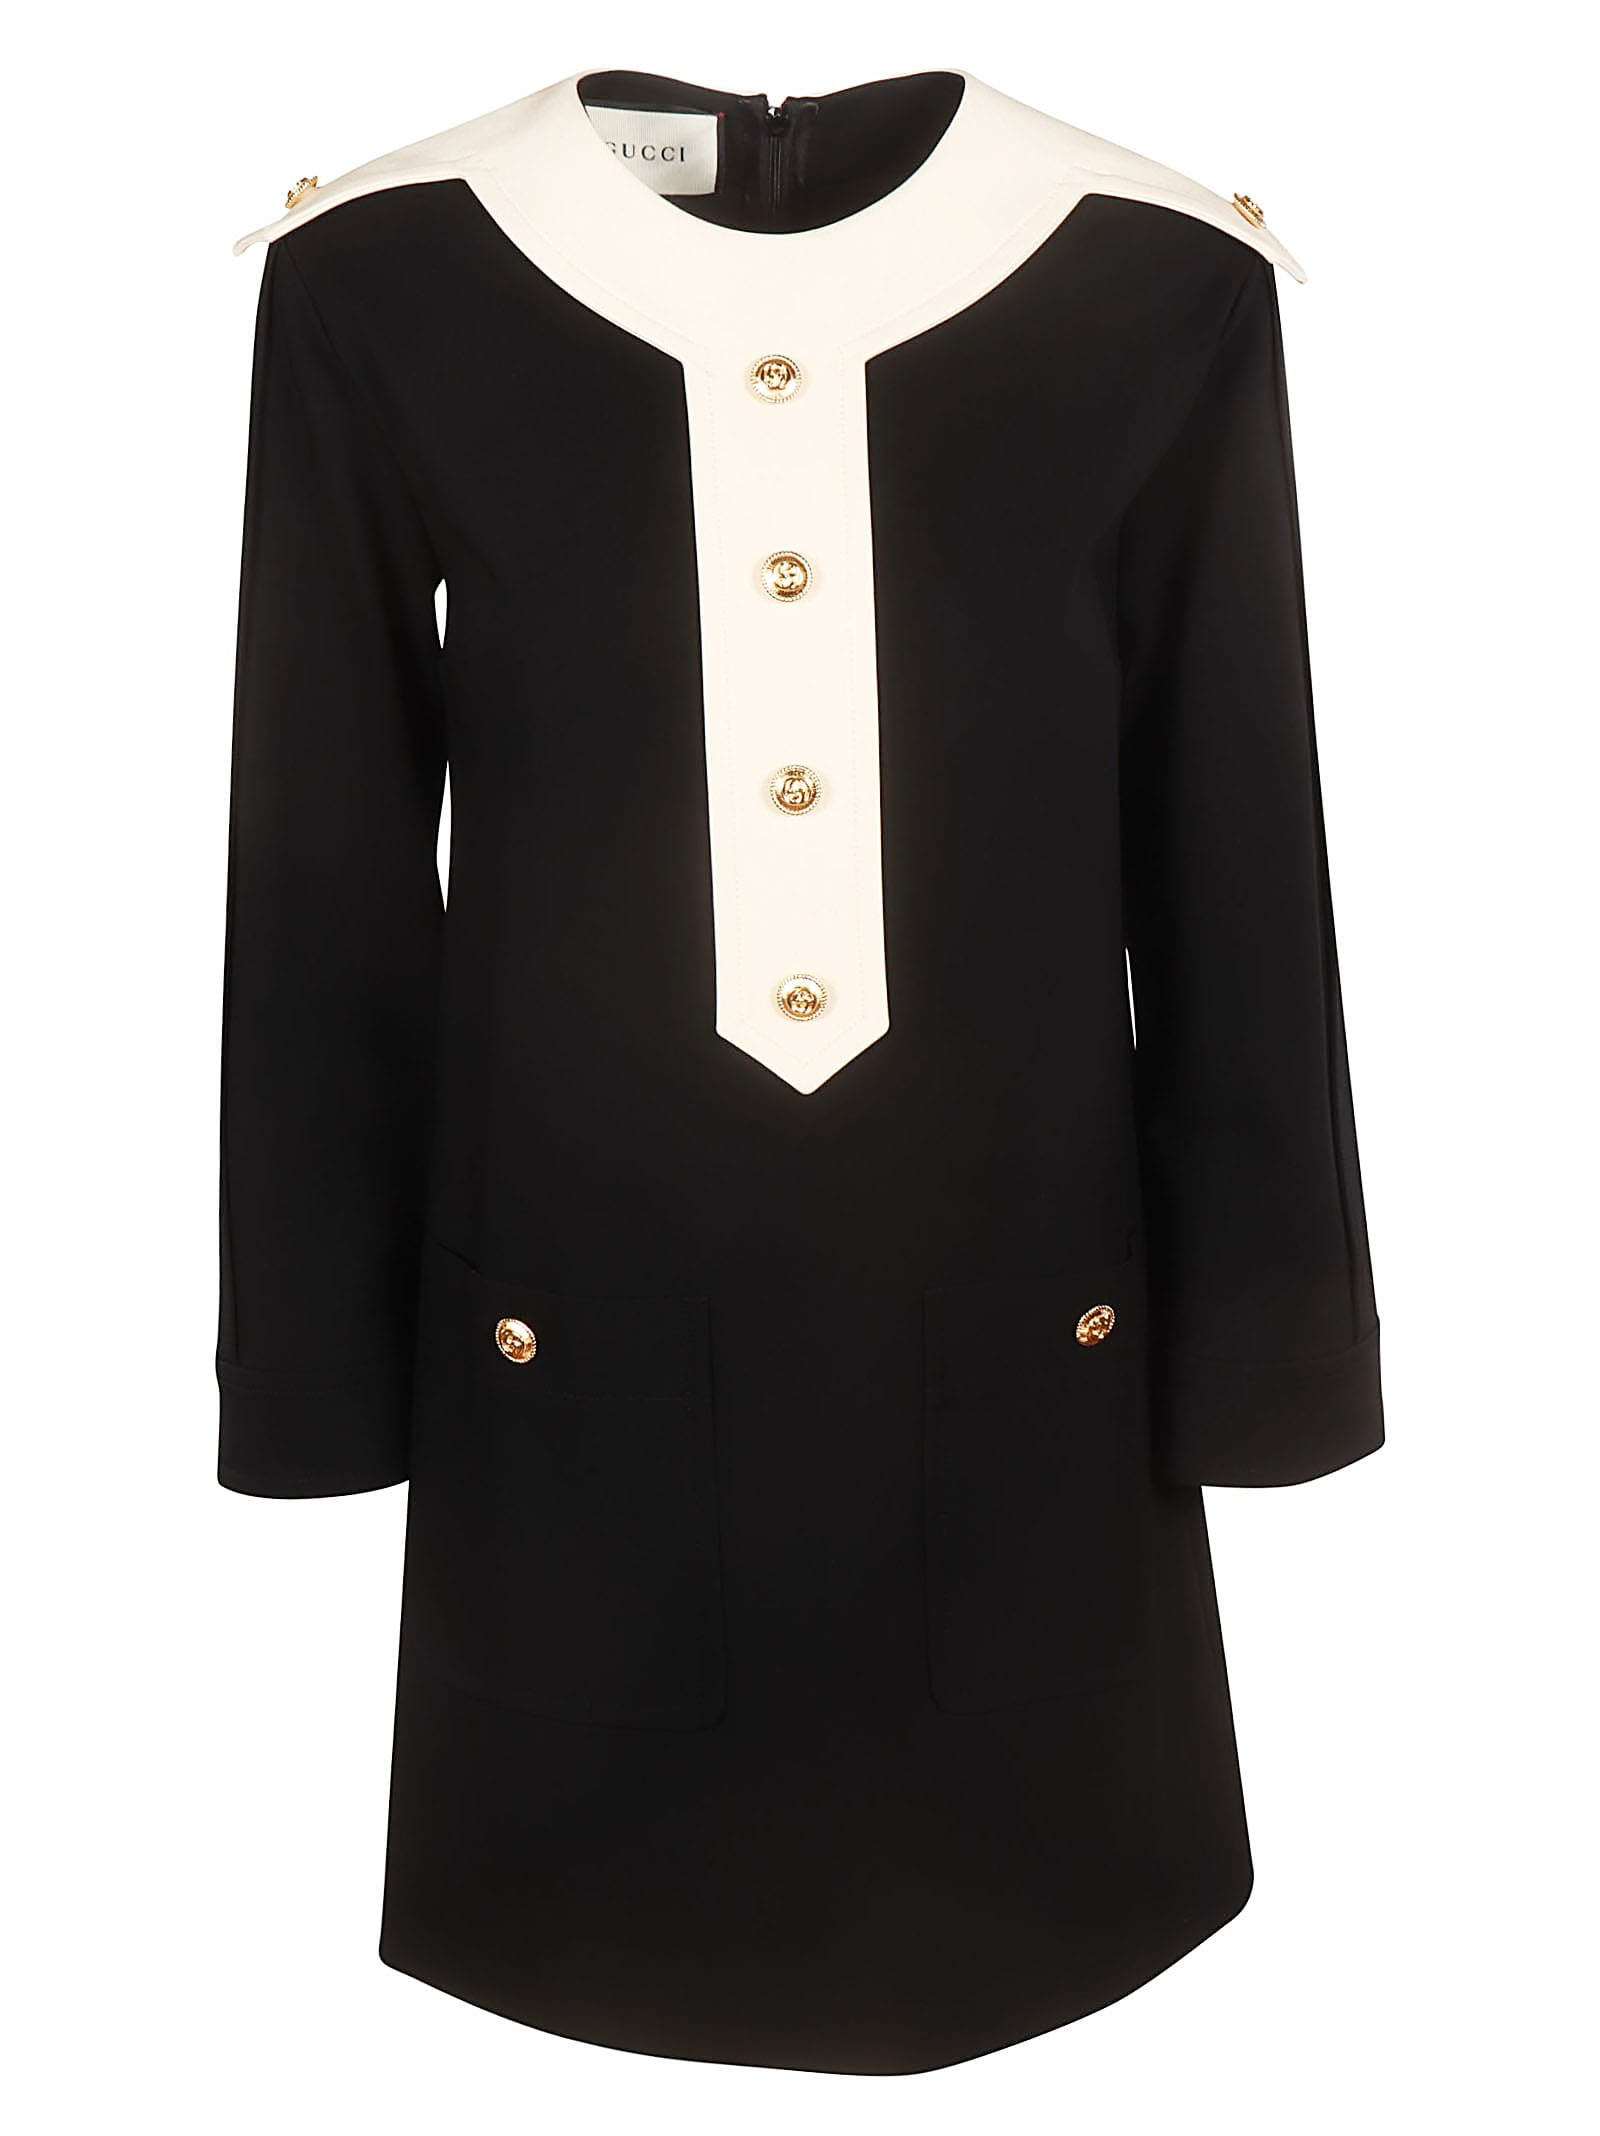 Gucci Buttoned Dress